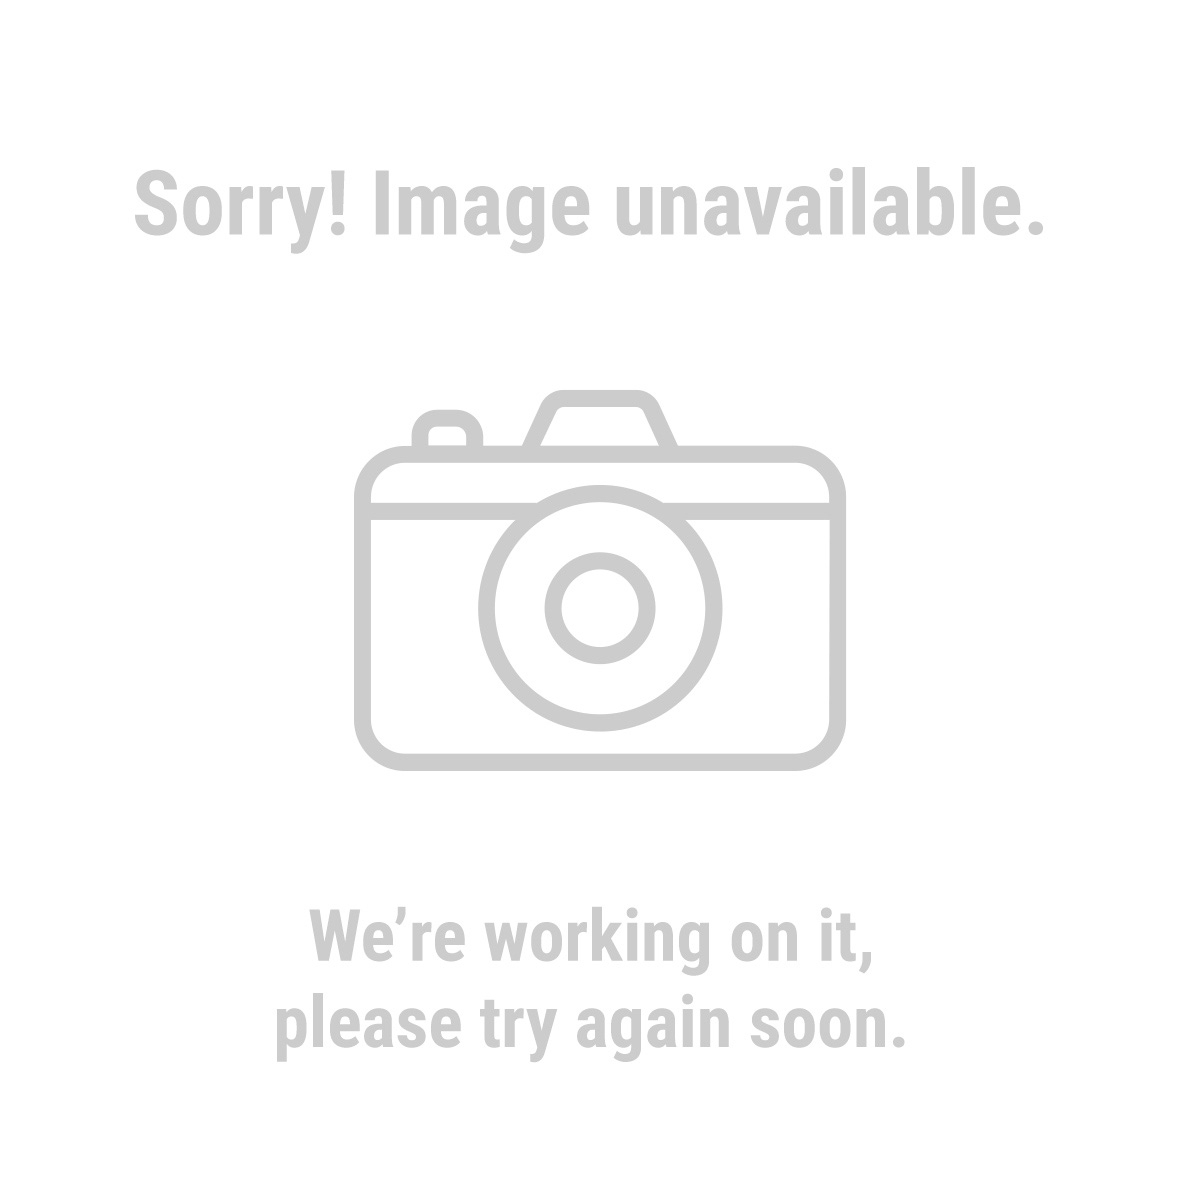 Bunker Hill Security 45891 0.71 cu. ft. Electronic Digital Safe